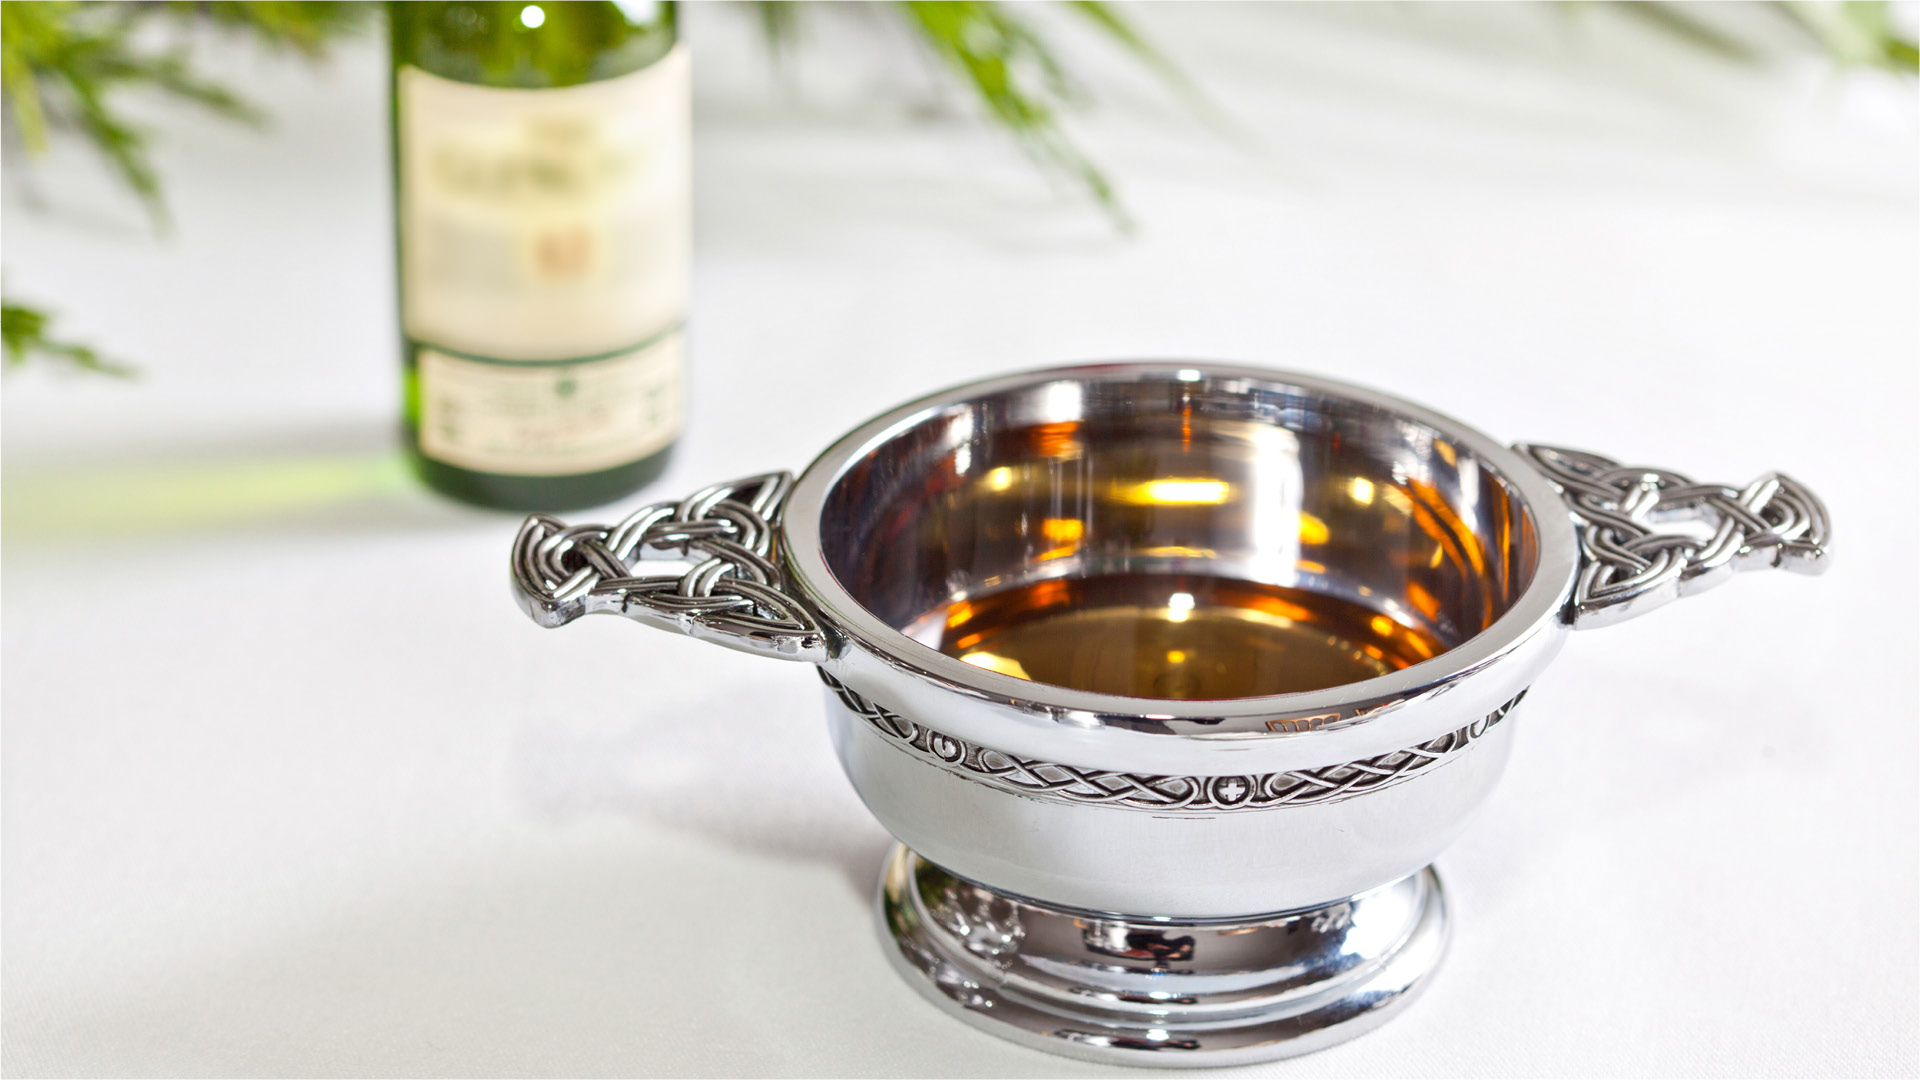 Scottish wedding tradition - The Quaich